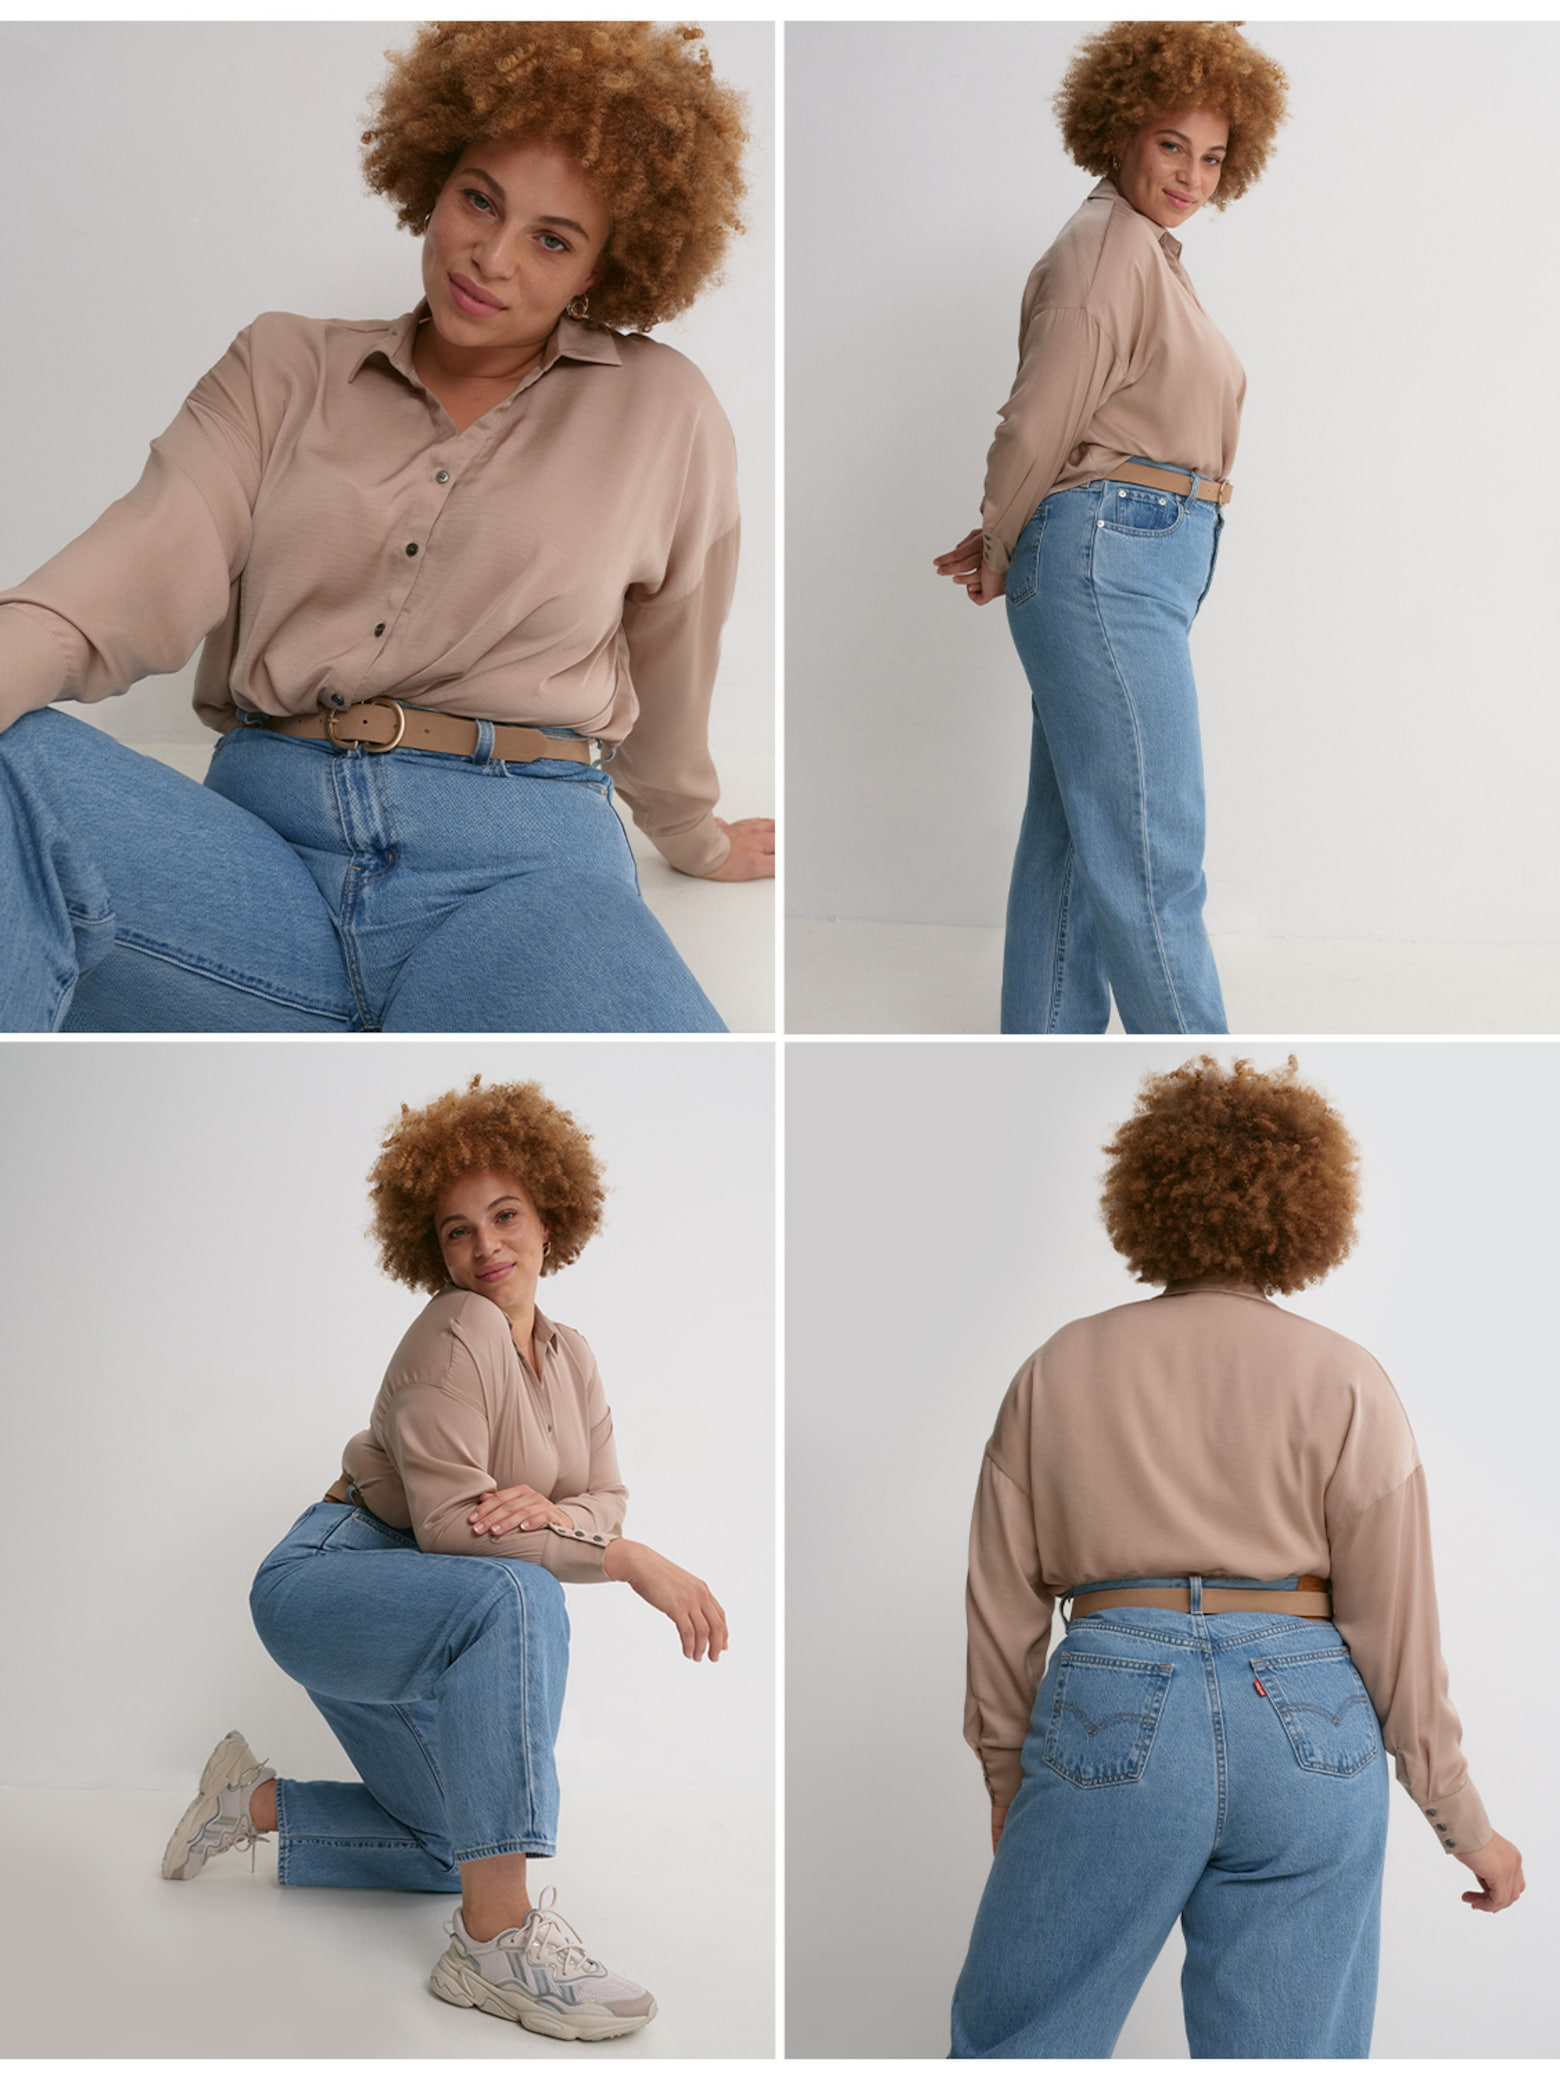 Body type: Petite & Curved Top 3 Jeans Fits